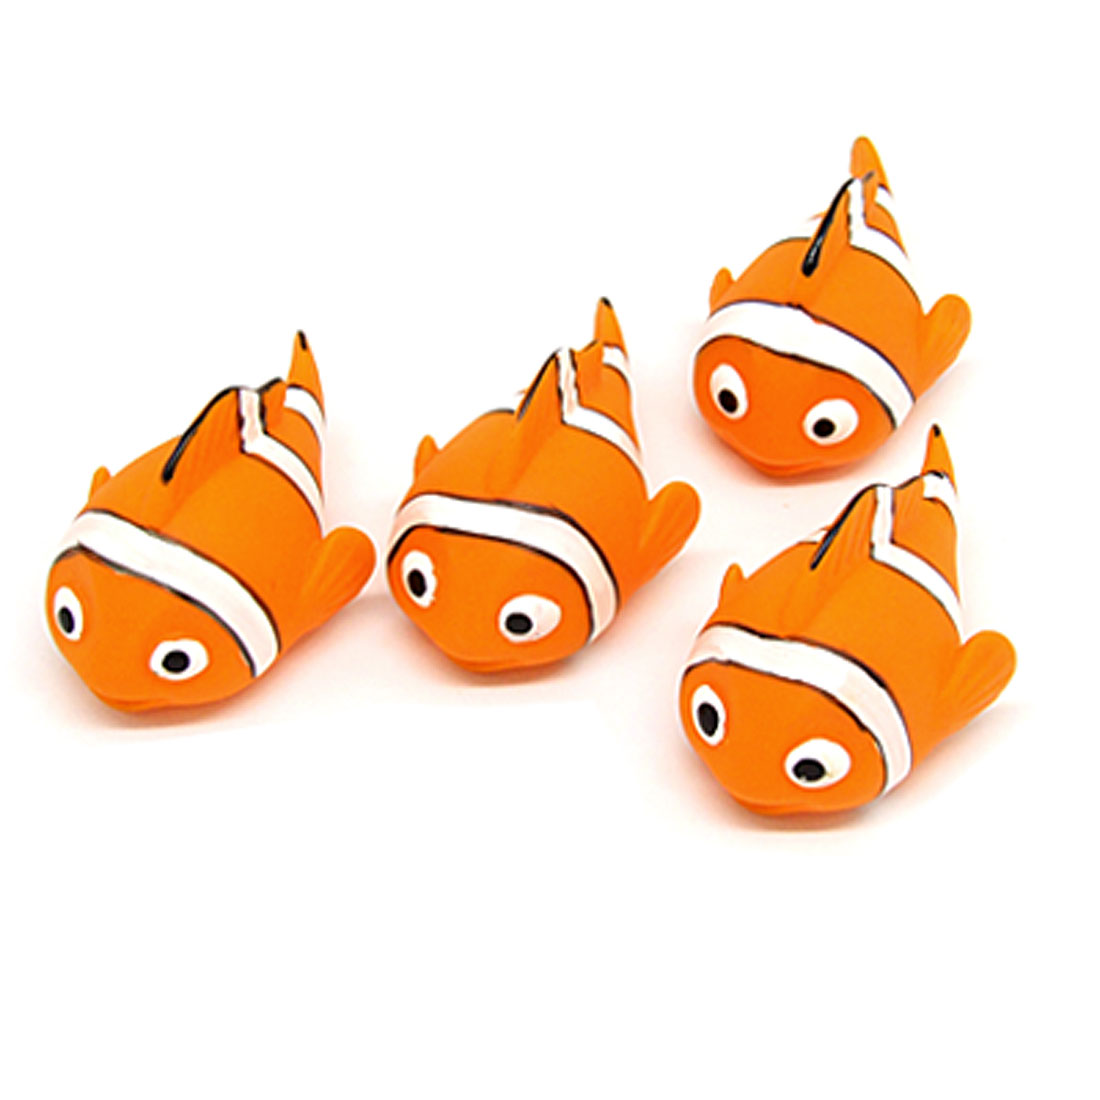 Vinyl Fish Doll Squeeze Squeak Children Toy Orange White